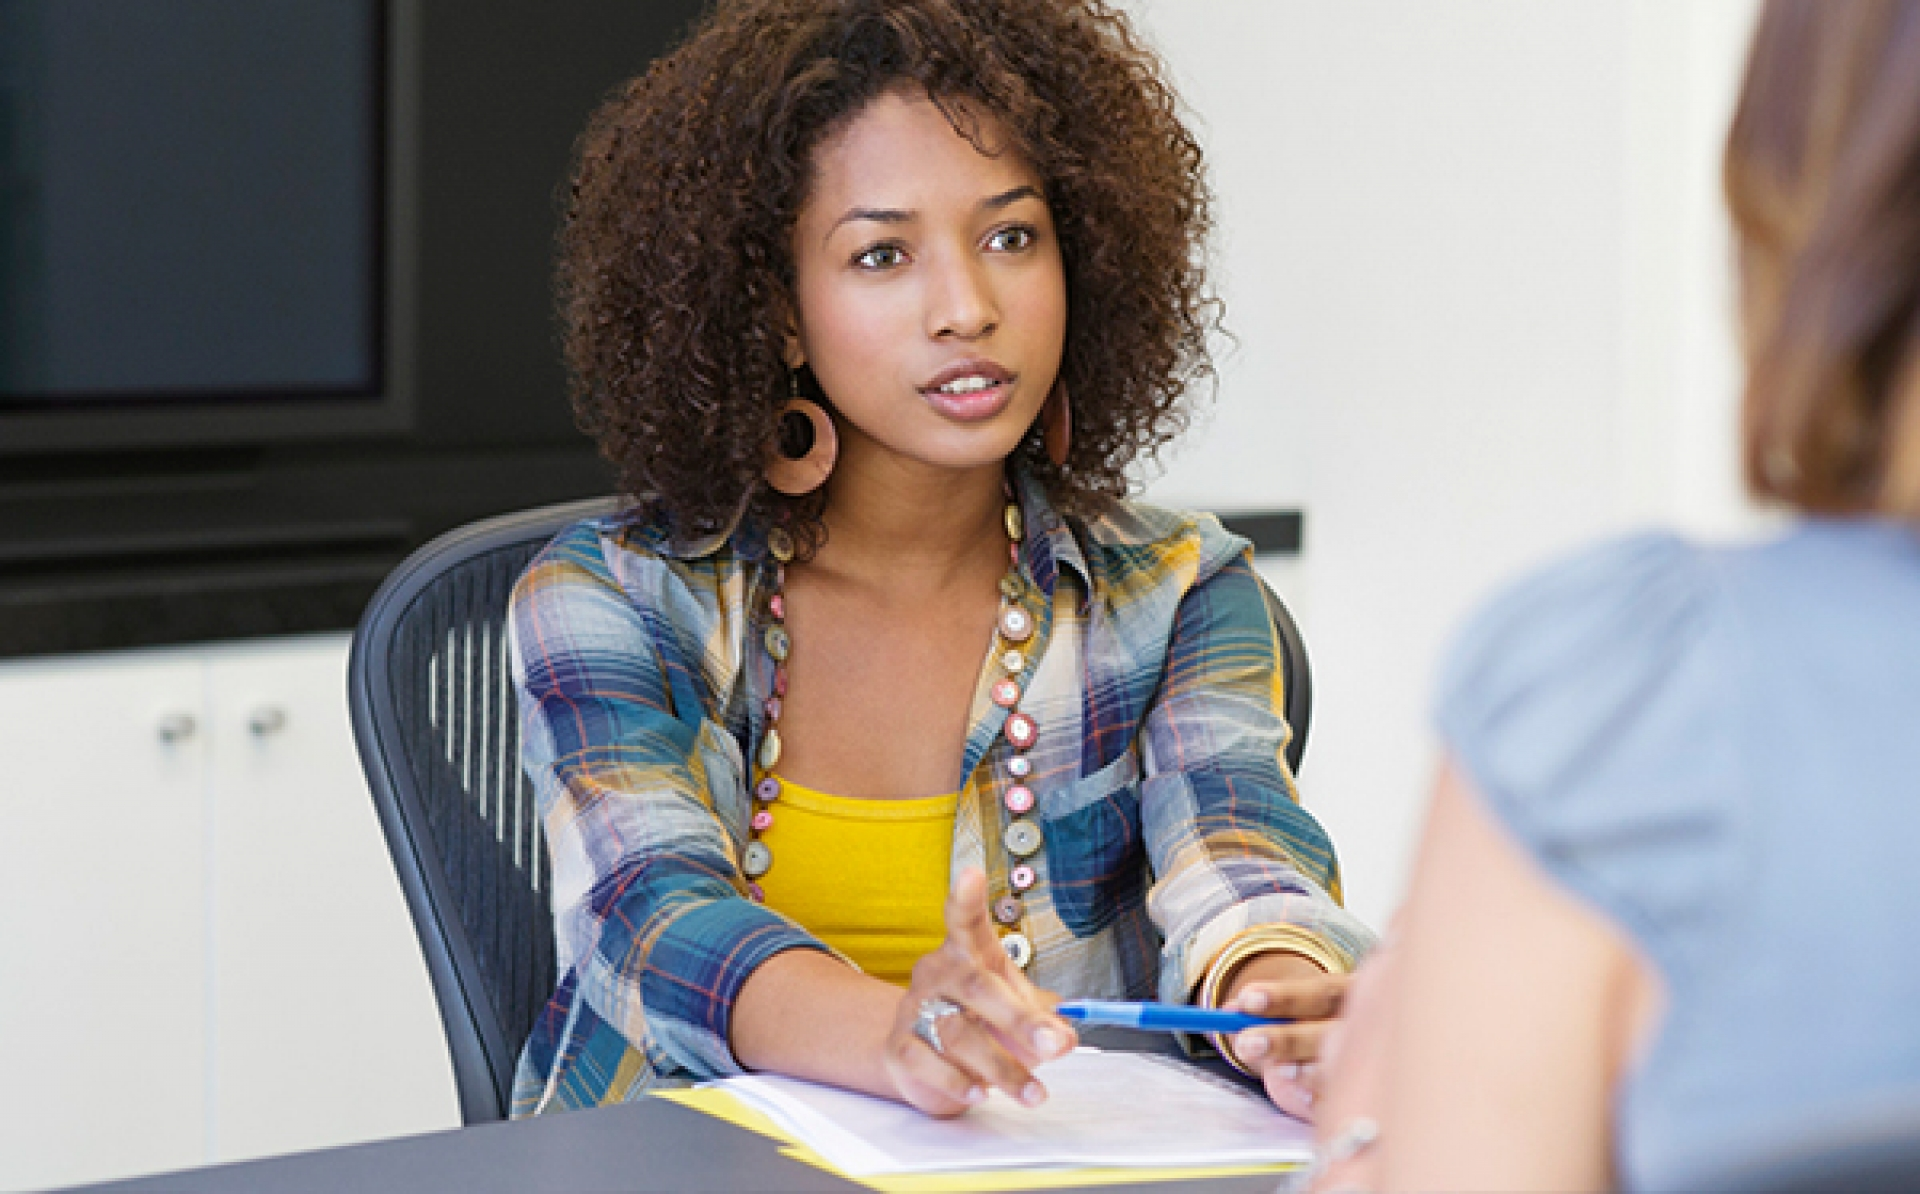 Teenage interviewers are an advantage in mental health recruitment